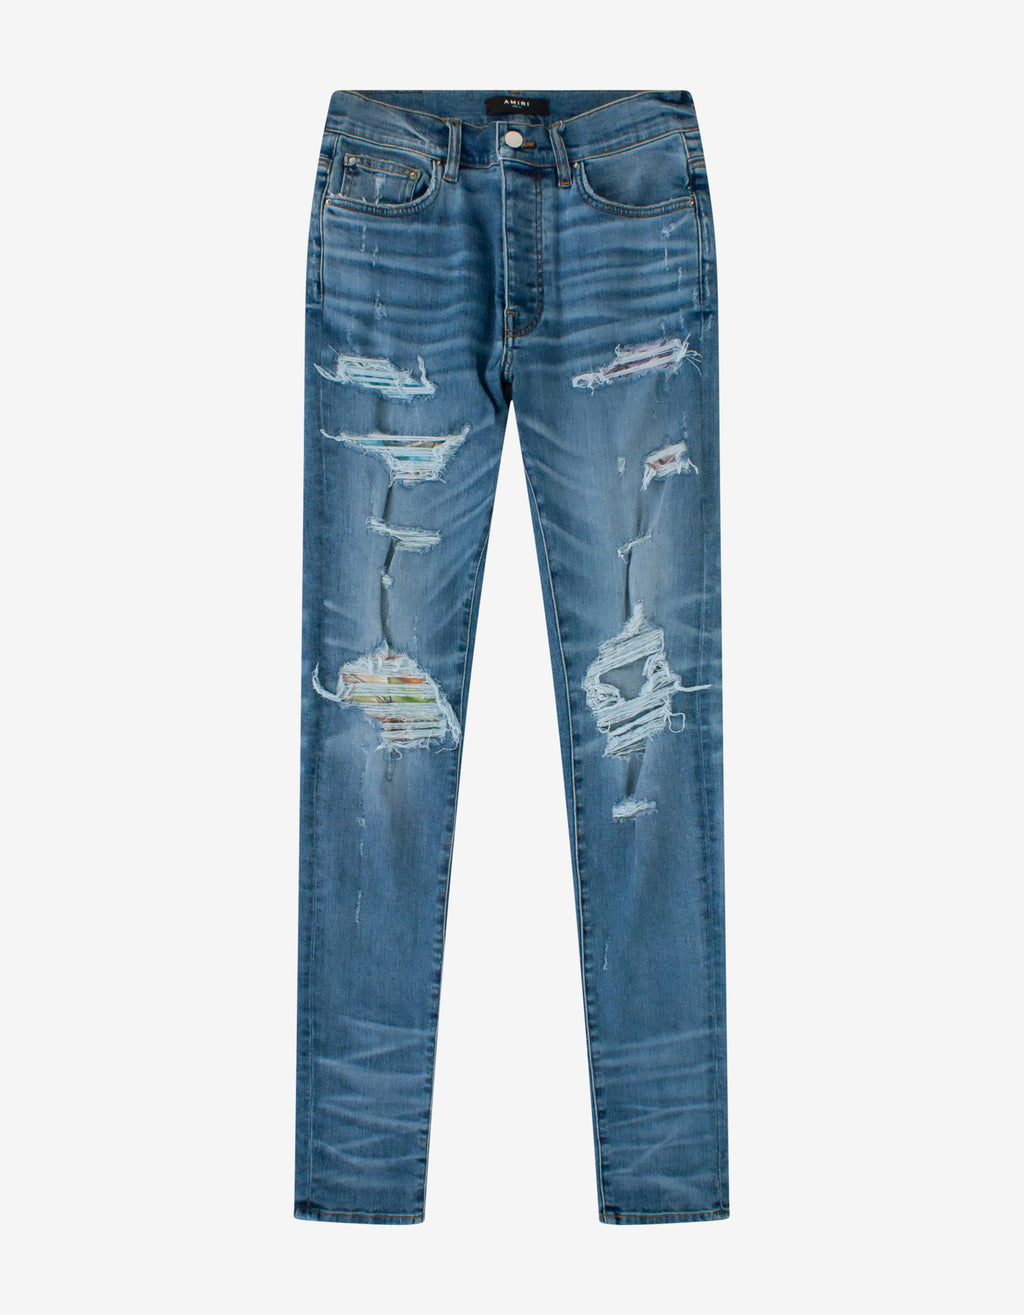 Hawaiian Patch Rosebowl Jeans